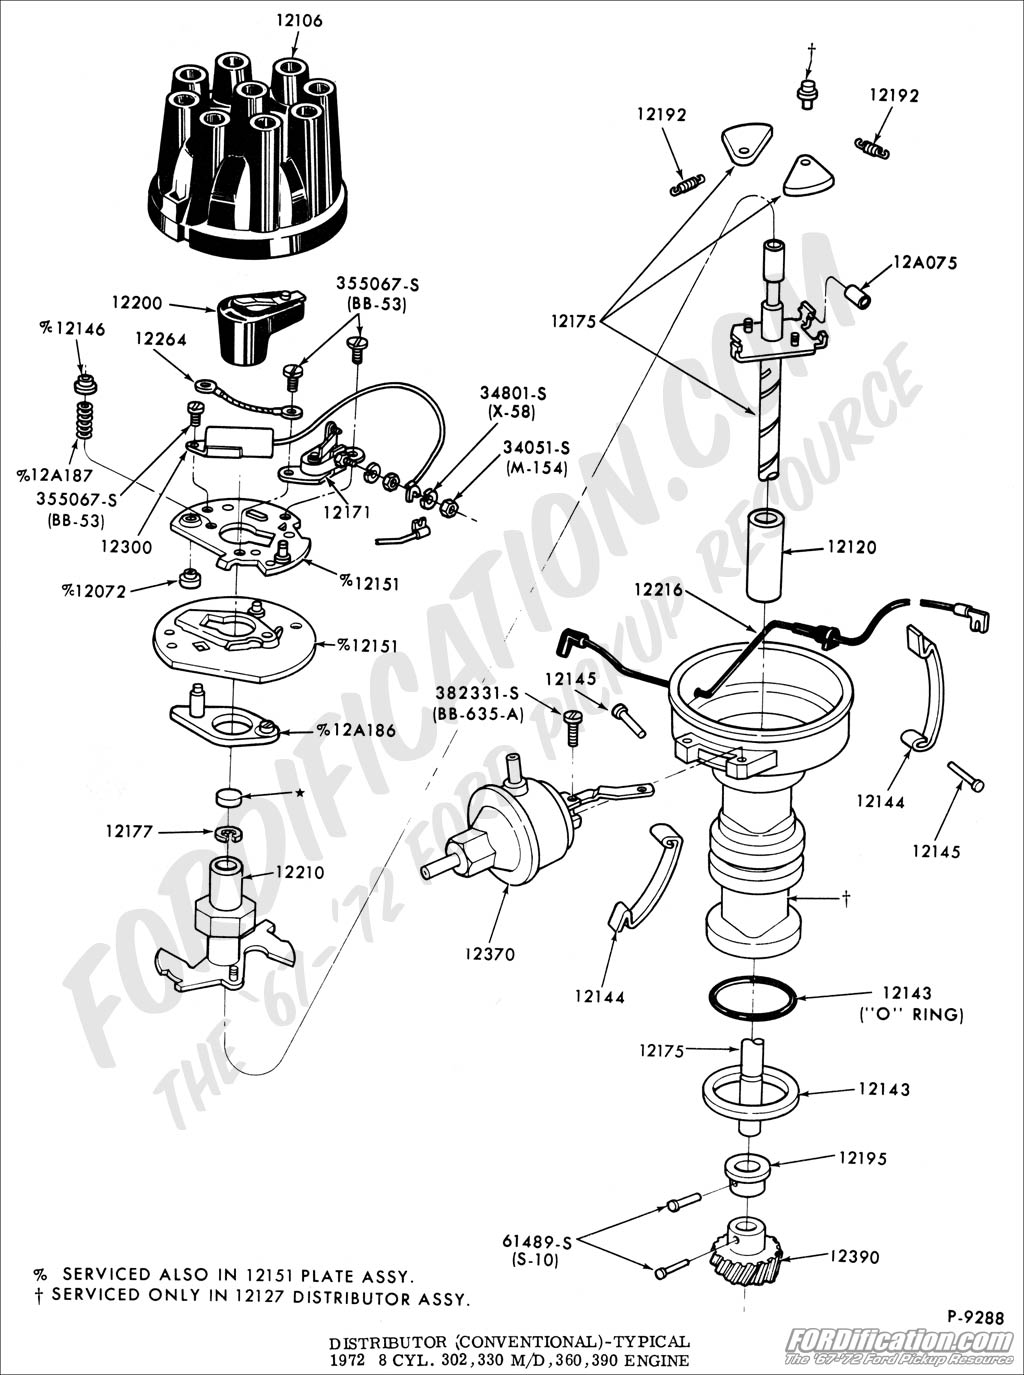 hight resolution of ford 390 distributor wiring online wiring diagramford 390 distributor wiring wiring diagram 1973 ford distributor wiring